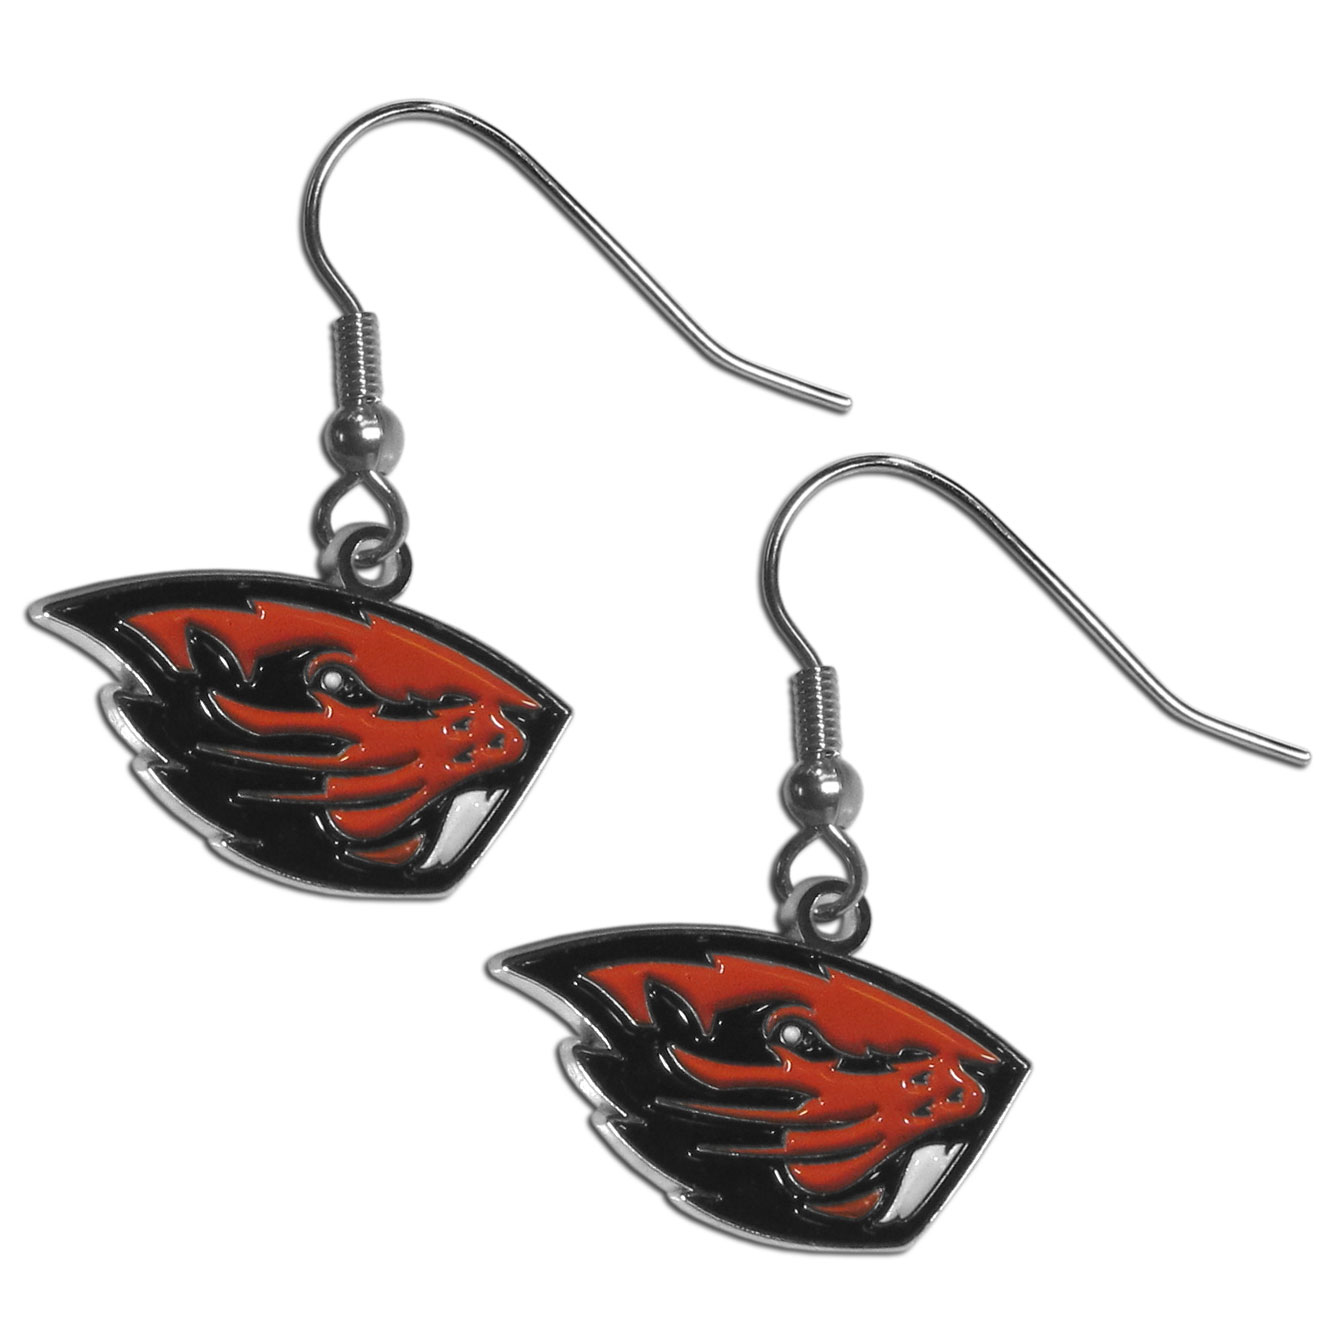 Oregon St. Beavers Chrome Dangle Earrings - Our officially licensed collegiate dangle earrings have fully cast Oregon St. Beavers charms with exceptional detail and a hand enameled finish. The earrings have a high polish nickel free chrome finish and hypoallergenic fishhook posts.